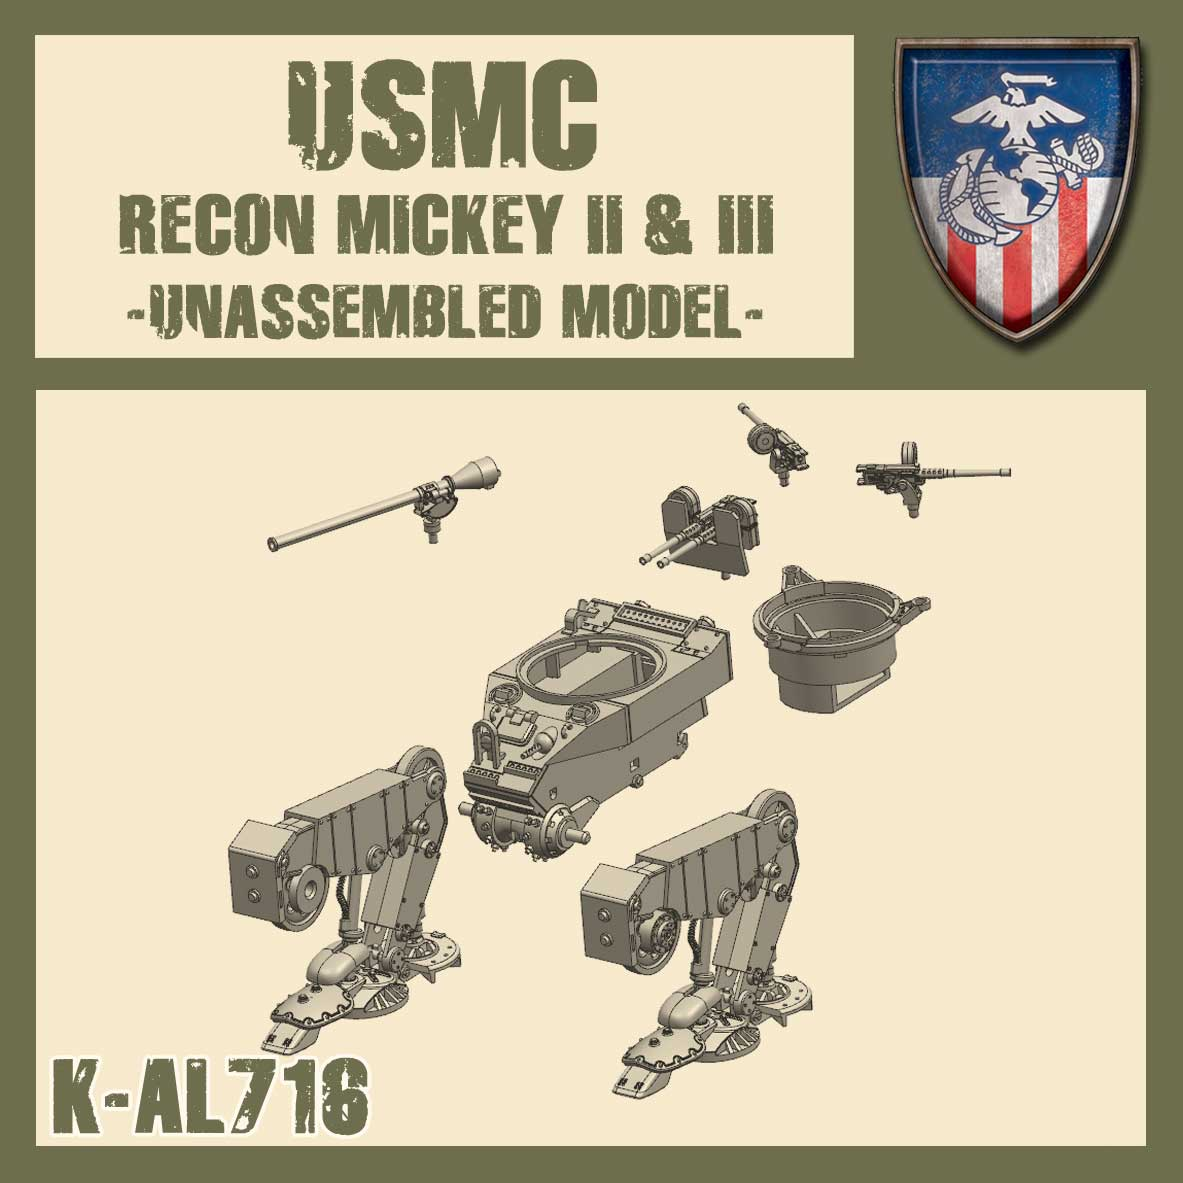 Recon Mickey II&III Kit